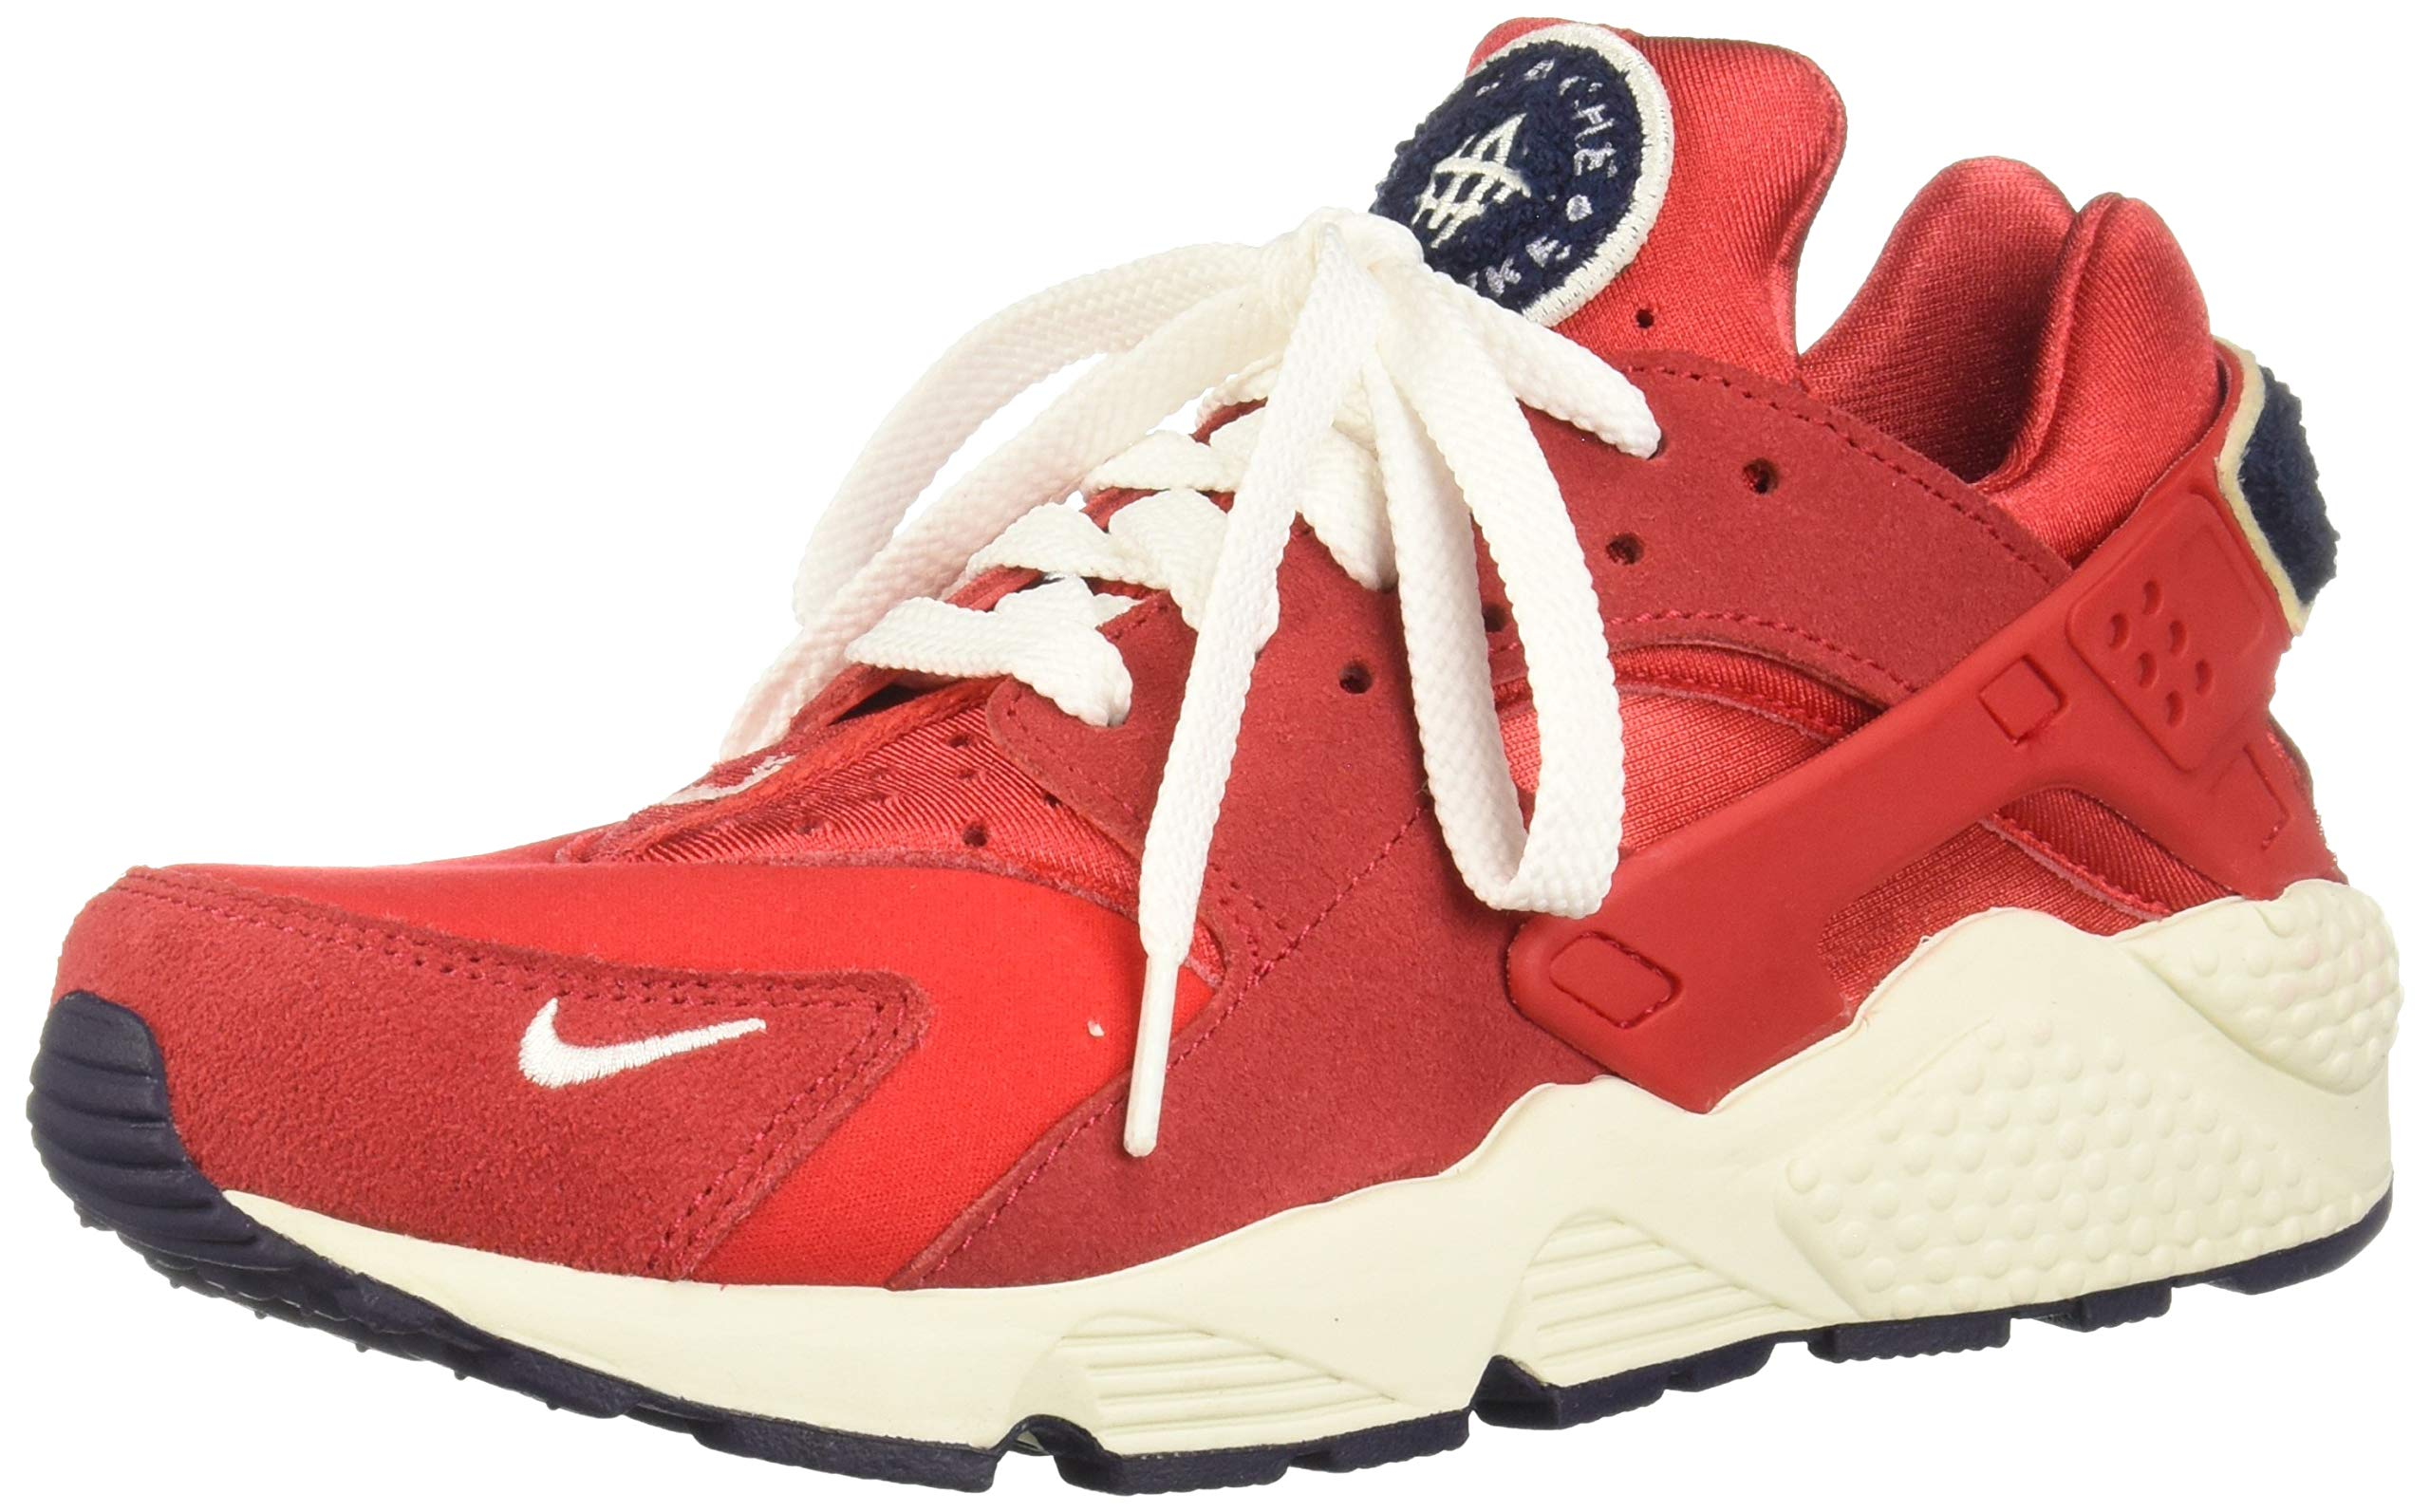 new arrival 27e79 dcd81 Galleon - Nike Huarache Premium Men s Running Shoes University Red Blackened  Blue 704830-602 (11 D(M) US)